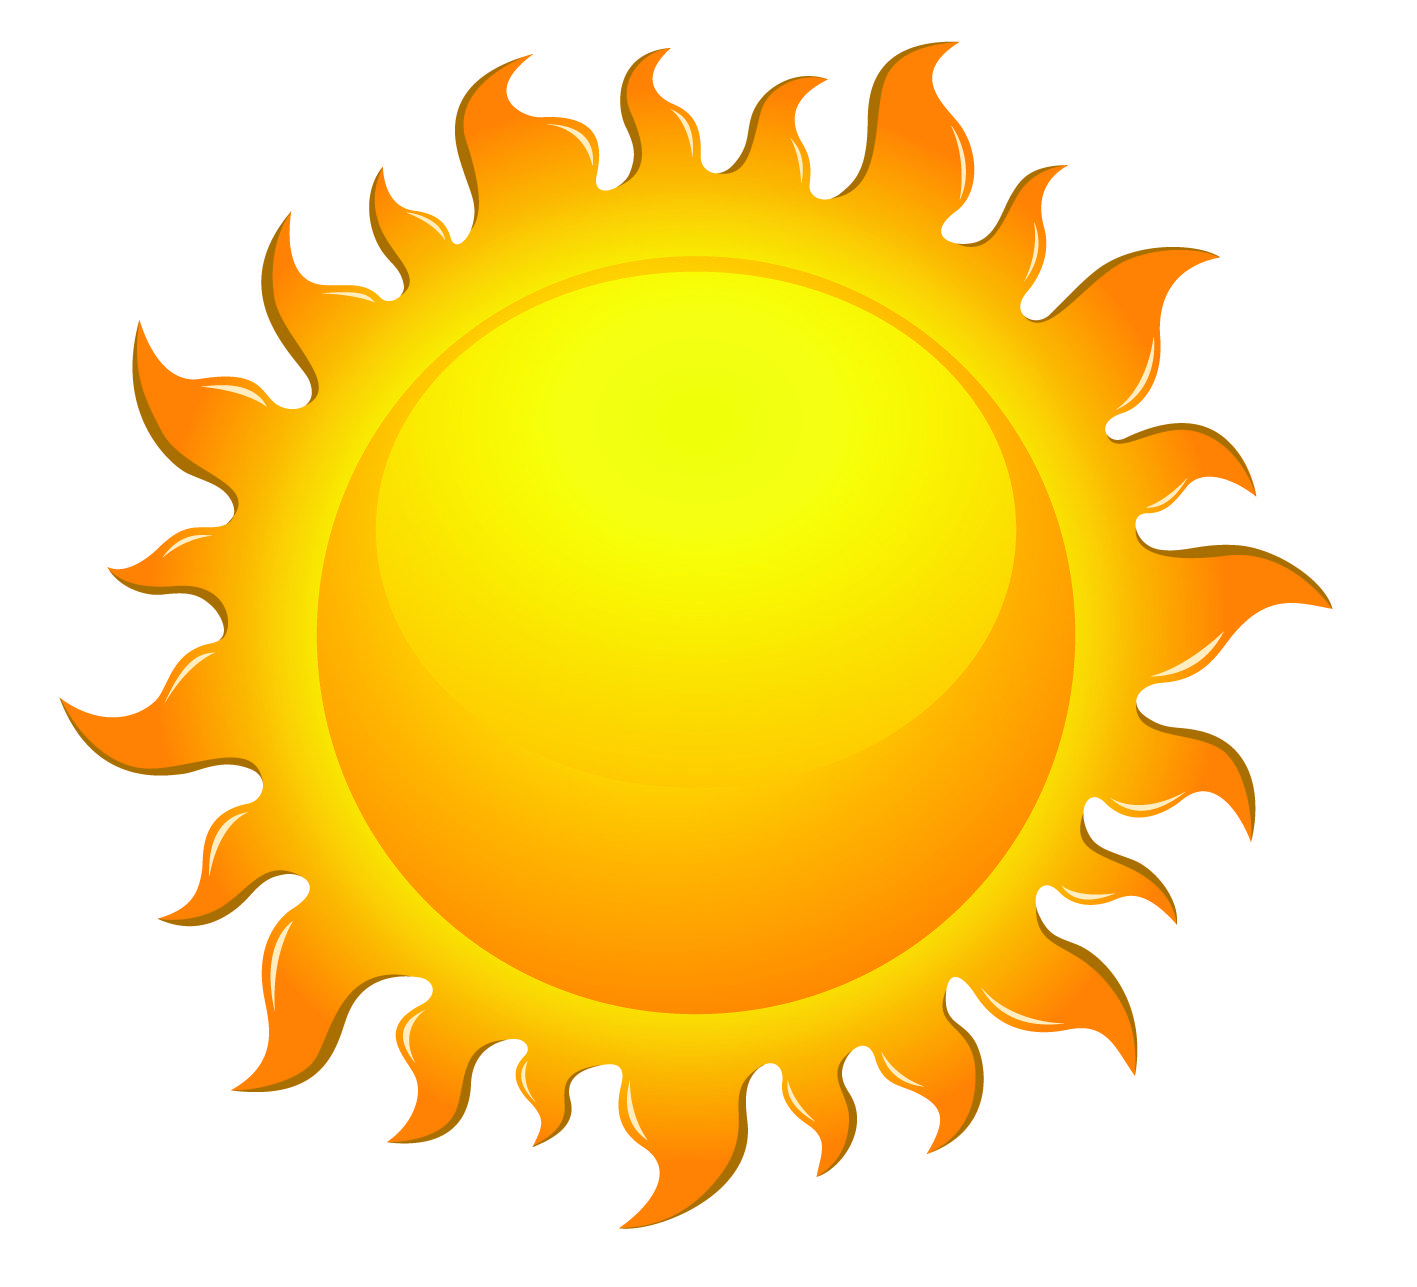 come learn how uv rays work and how they affect us create a shadow rh pinterest com free vector sun shine free vector sunrise